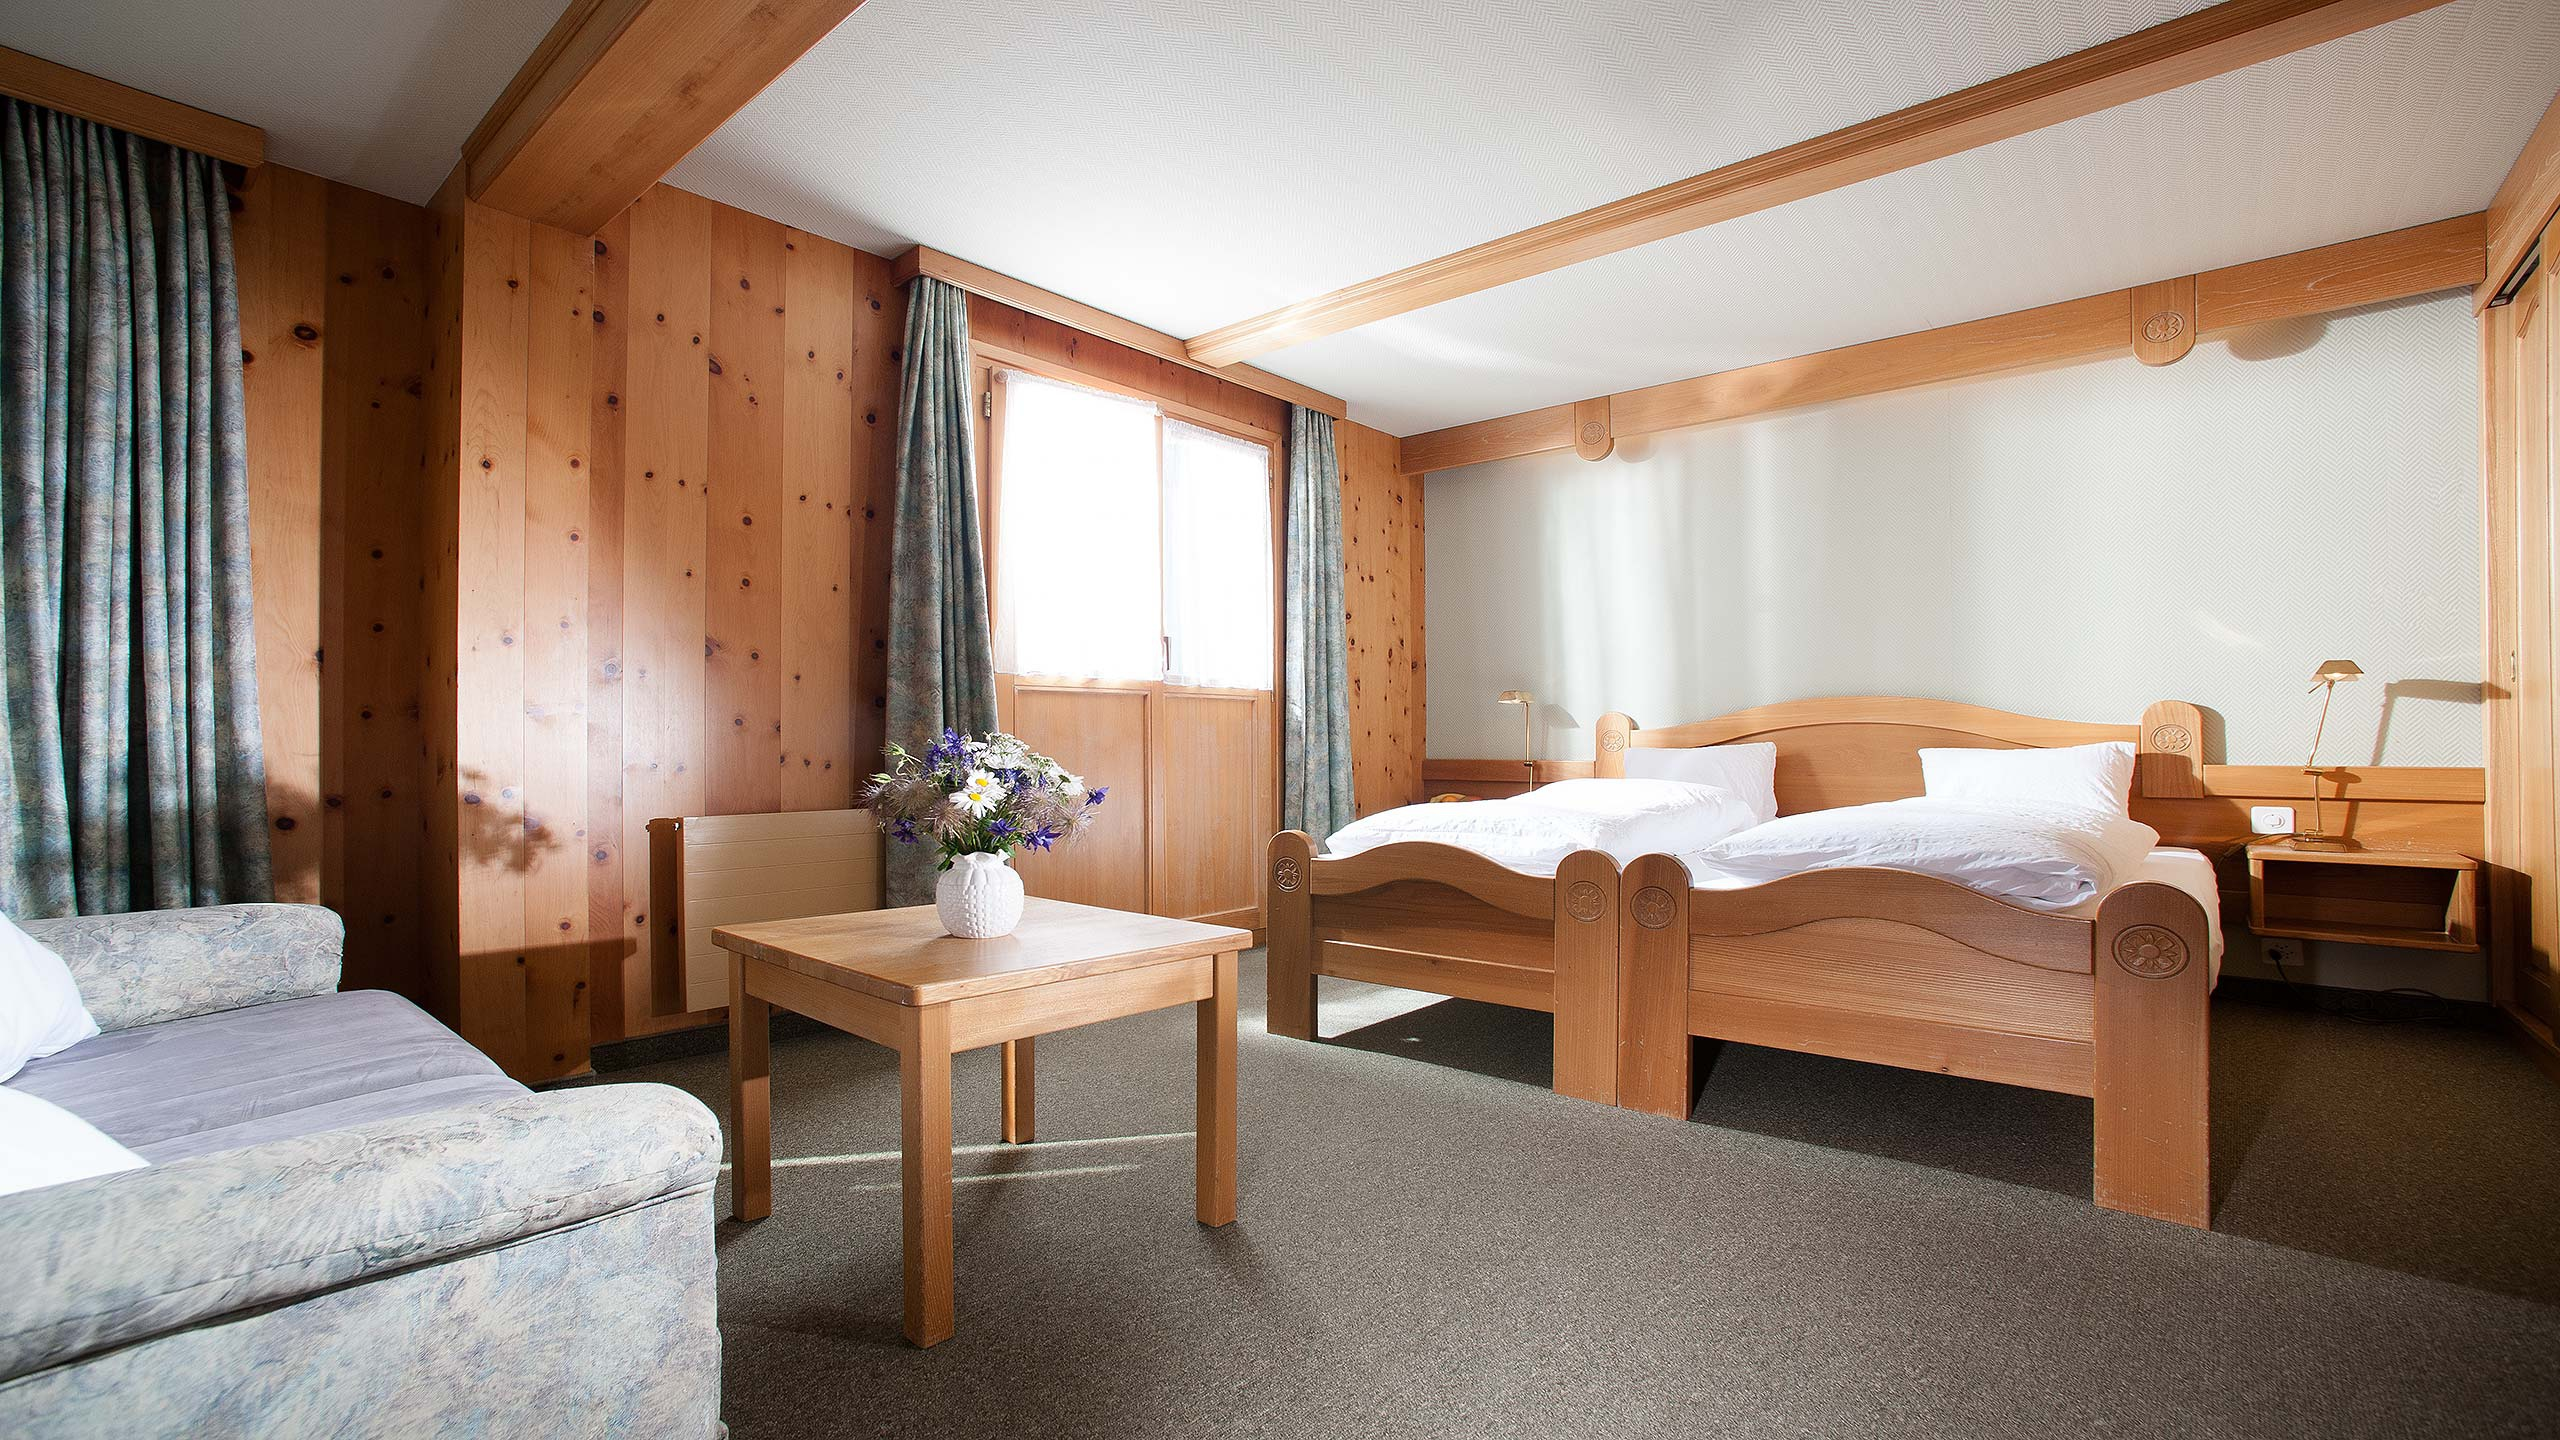 Double room de luxe